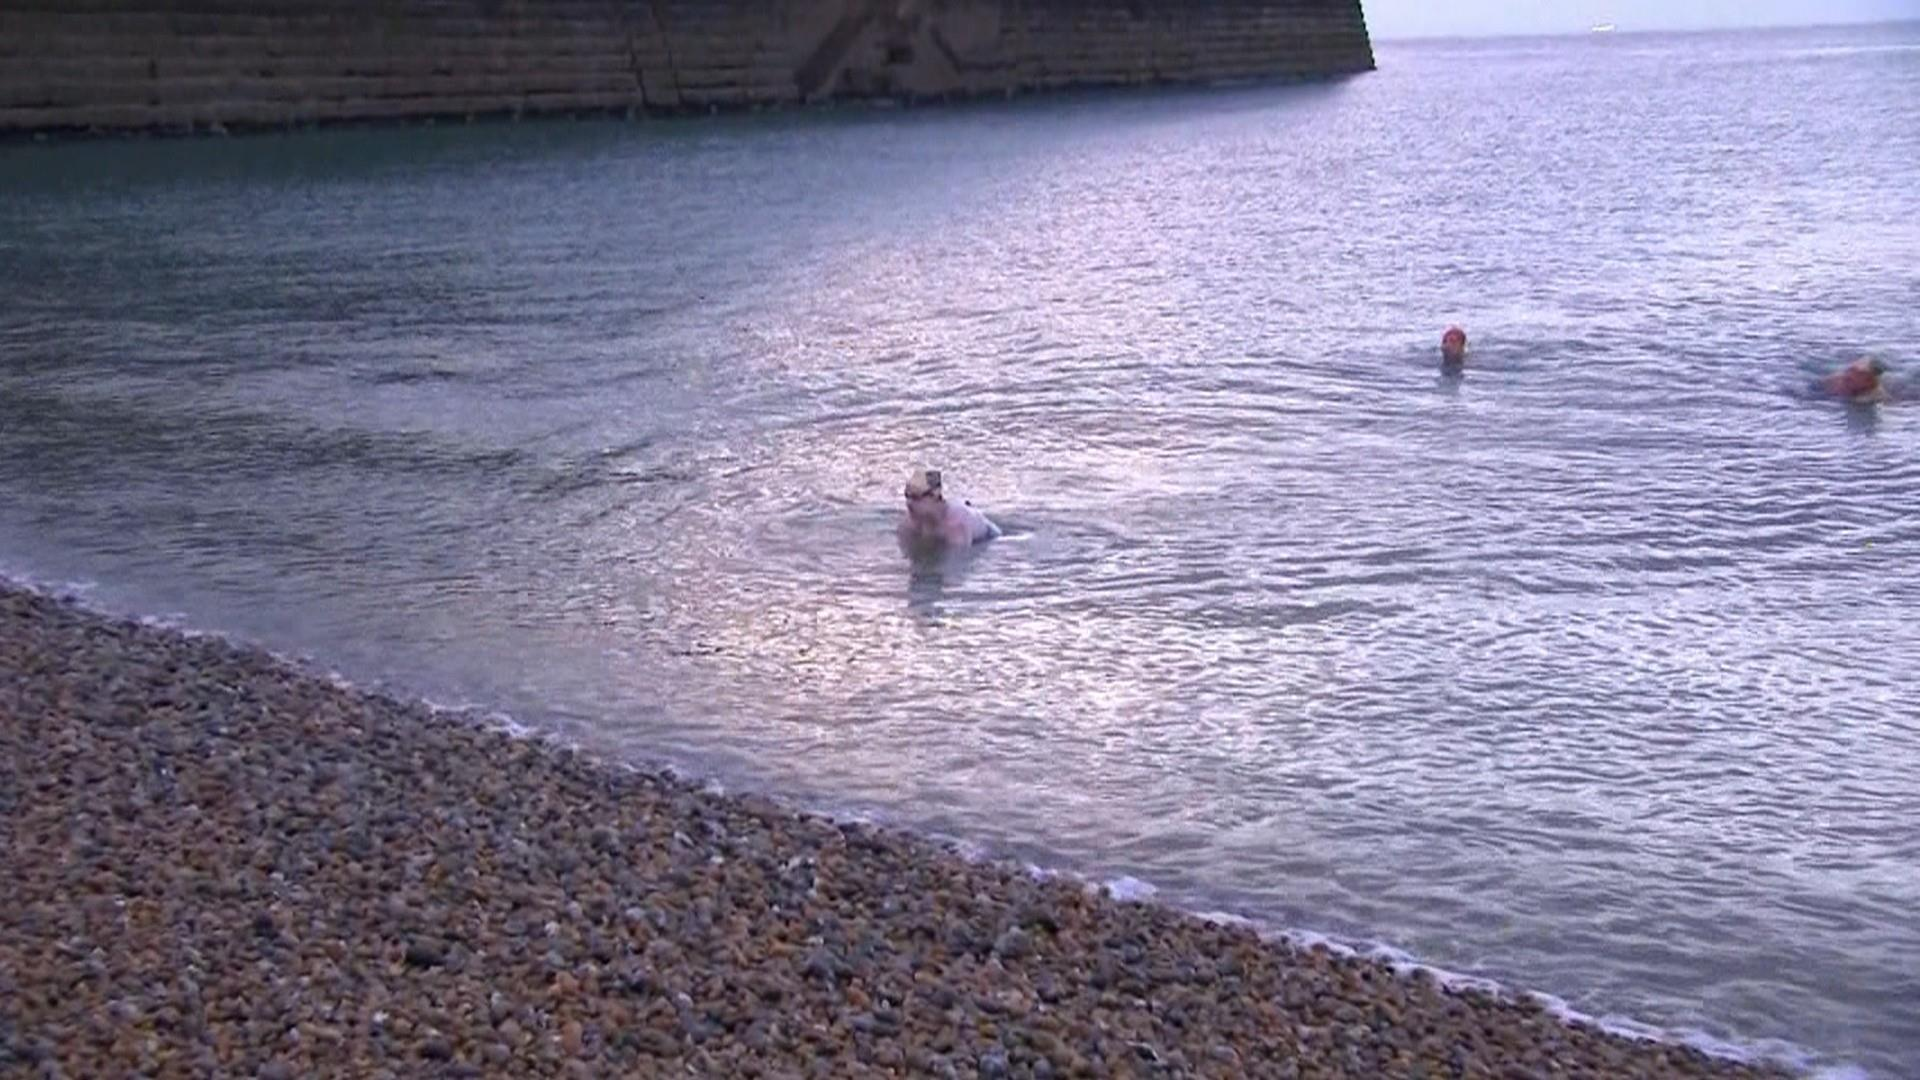 Cancer survivor swims across English Channel 4 times nonstop